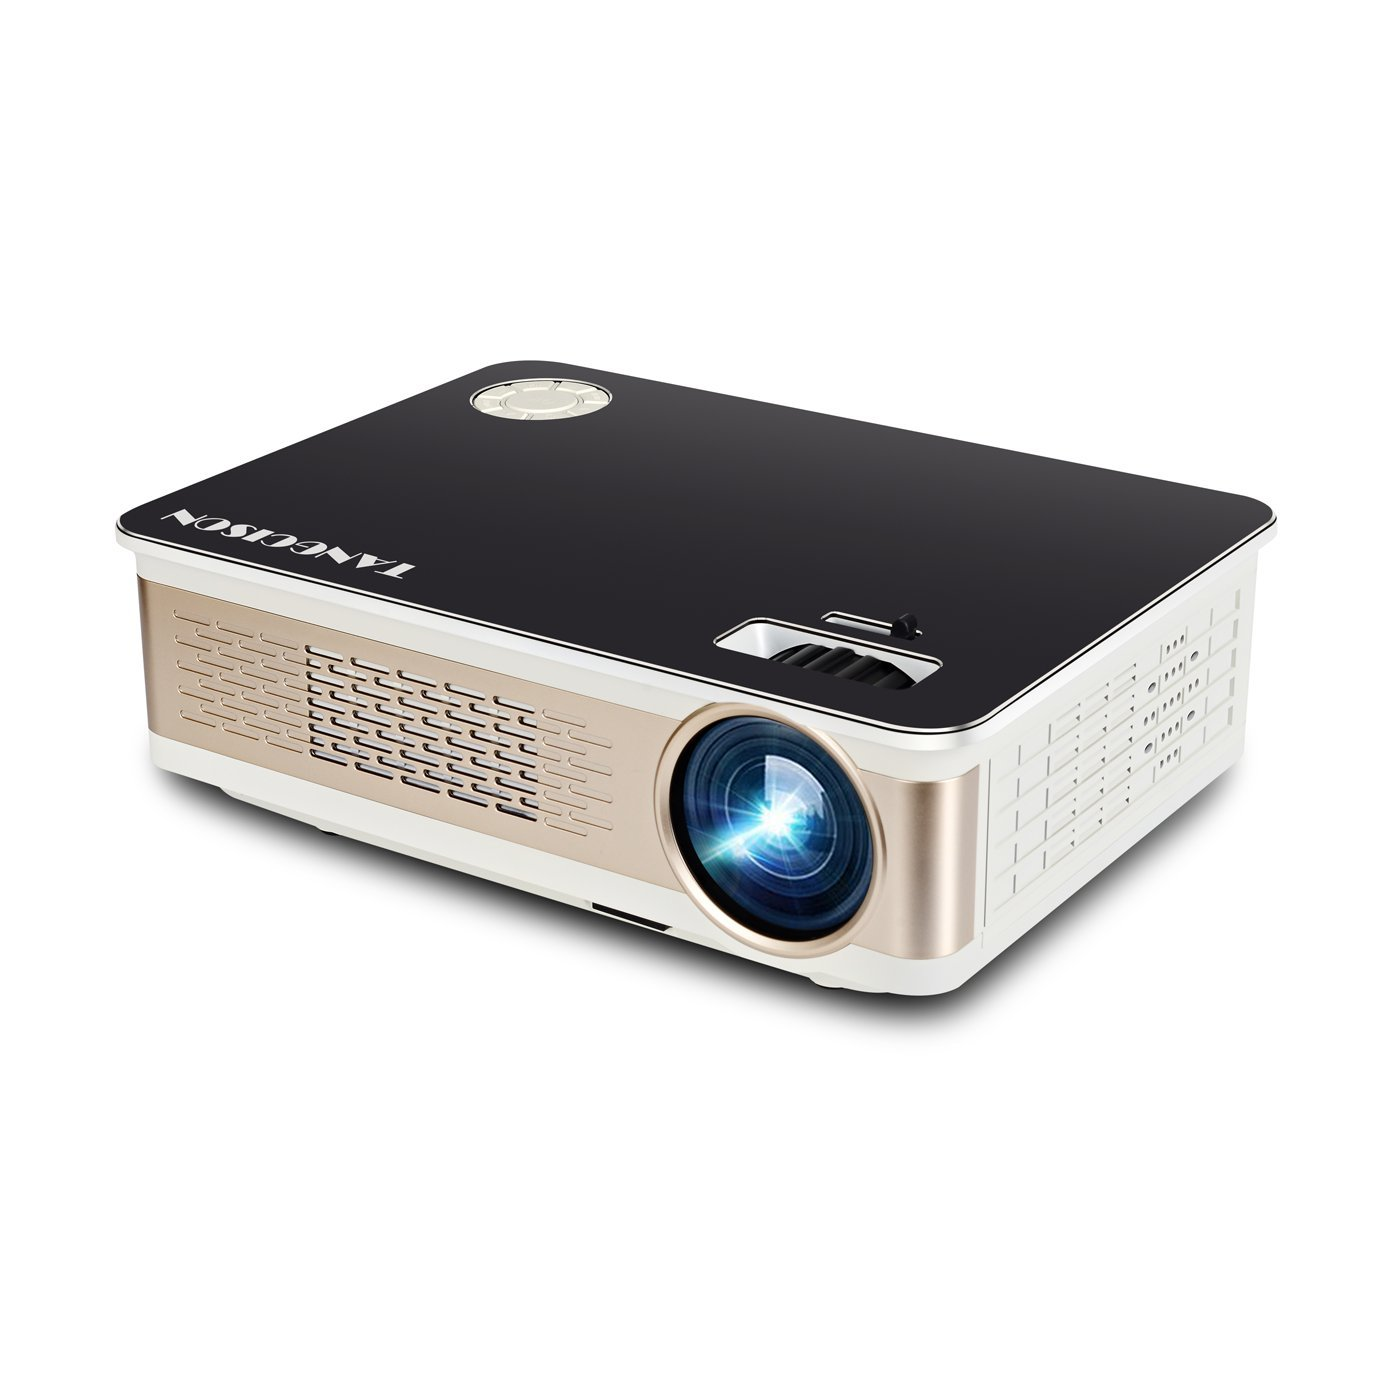 TANGCISON Home Projector Video Projector, LED Christmas Projector 3300Luminous 280'' HD 1080P Projector Home Theater Video Mini Projector Multimedia Home Theater Movies Projector (black)